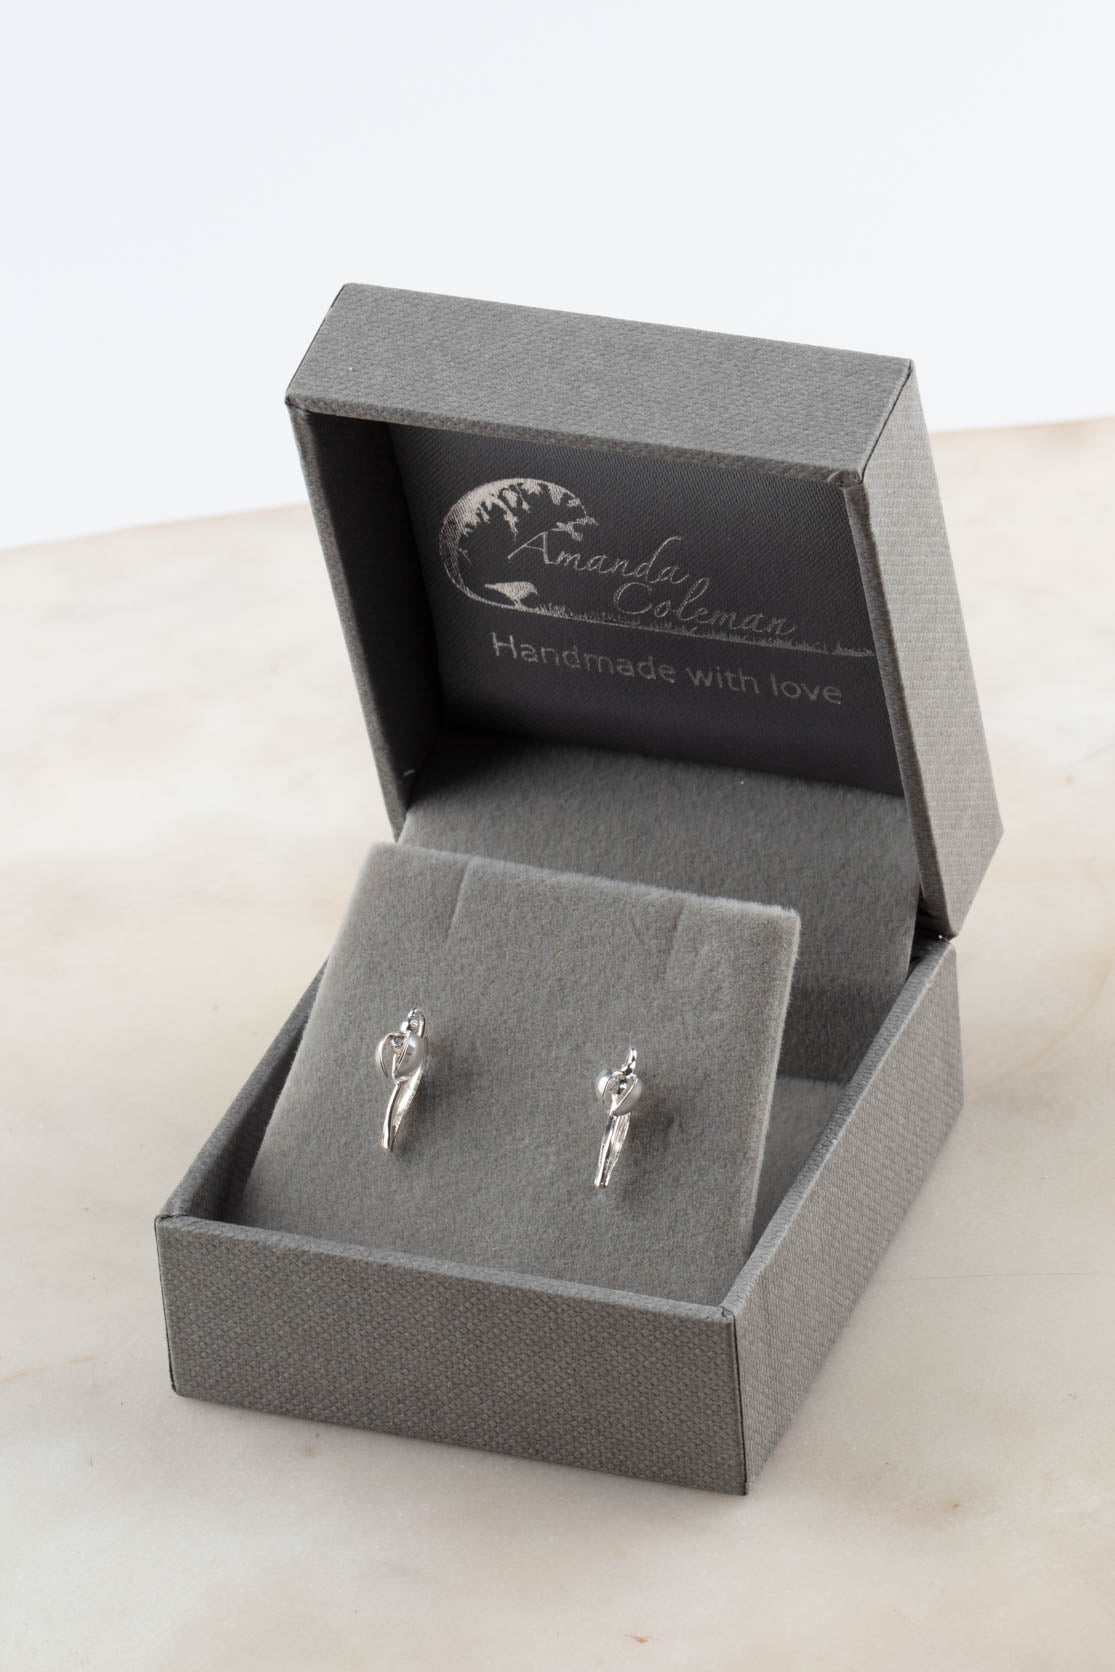 Silver Snowdrop Earring - Stud Of The Month #5 - February 2021